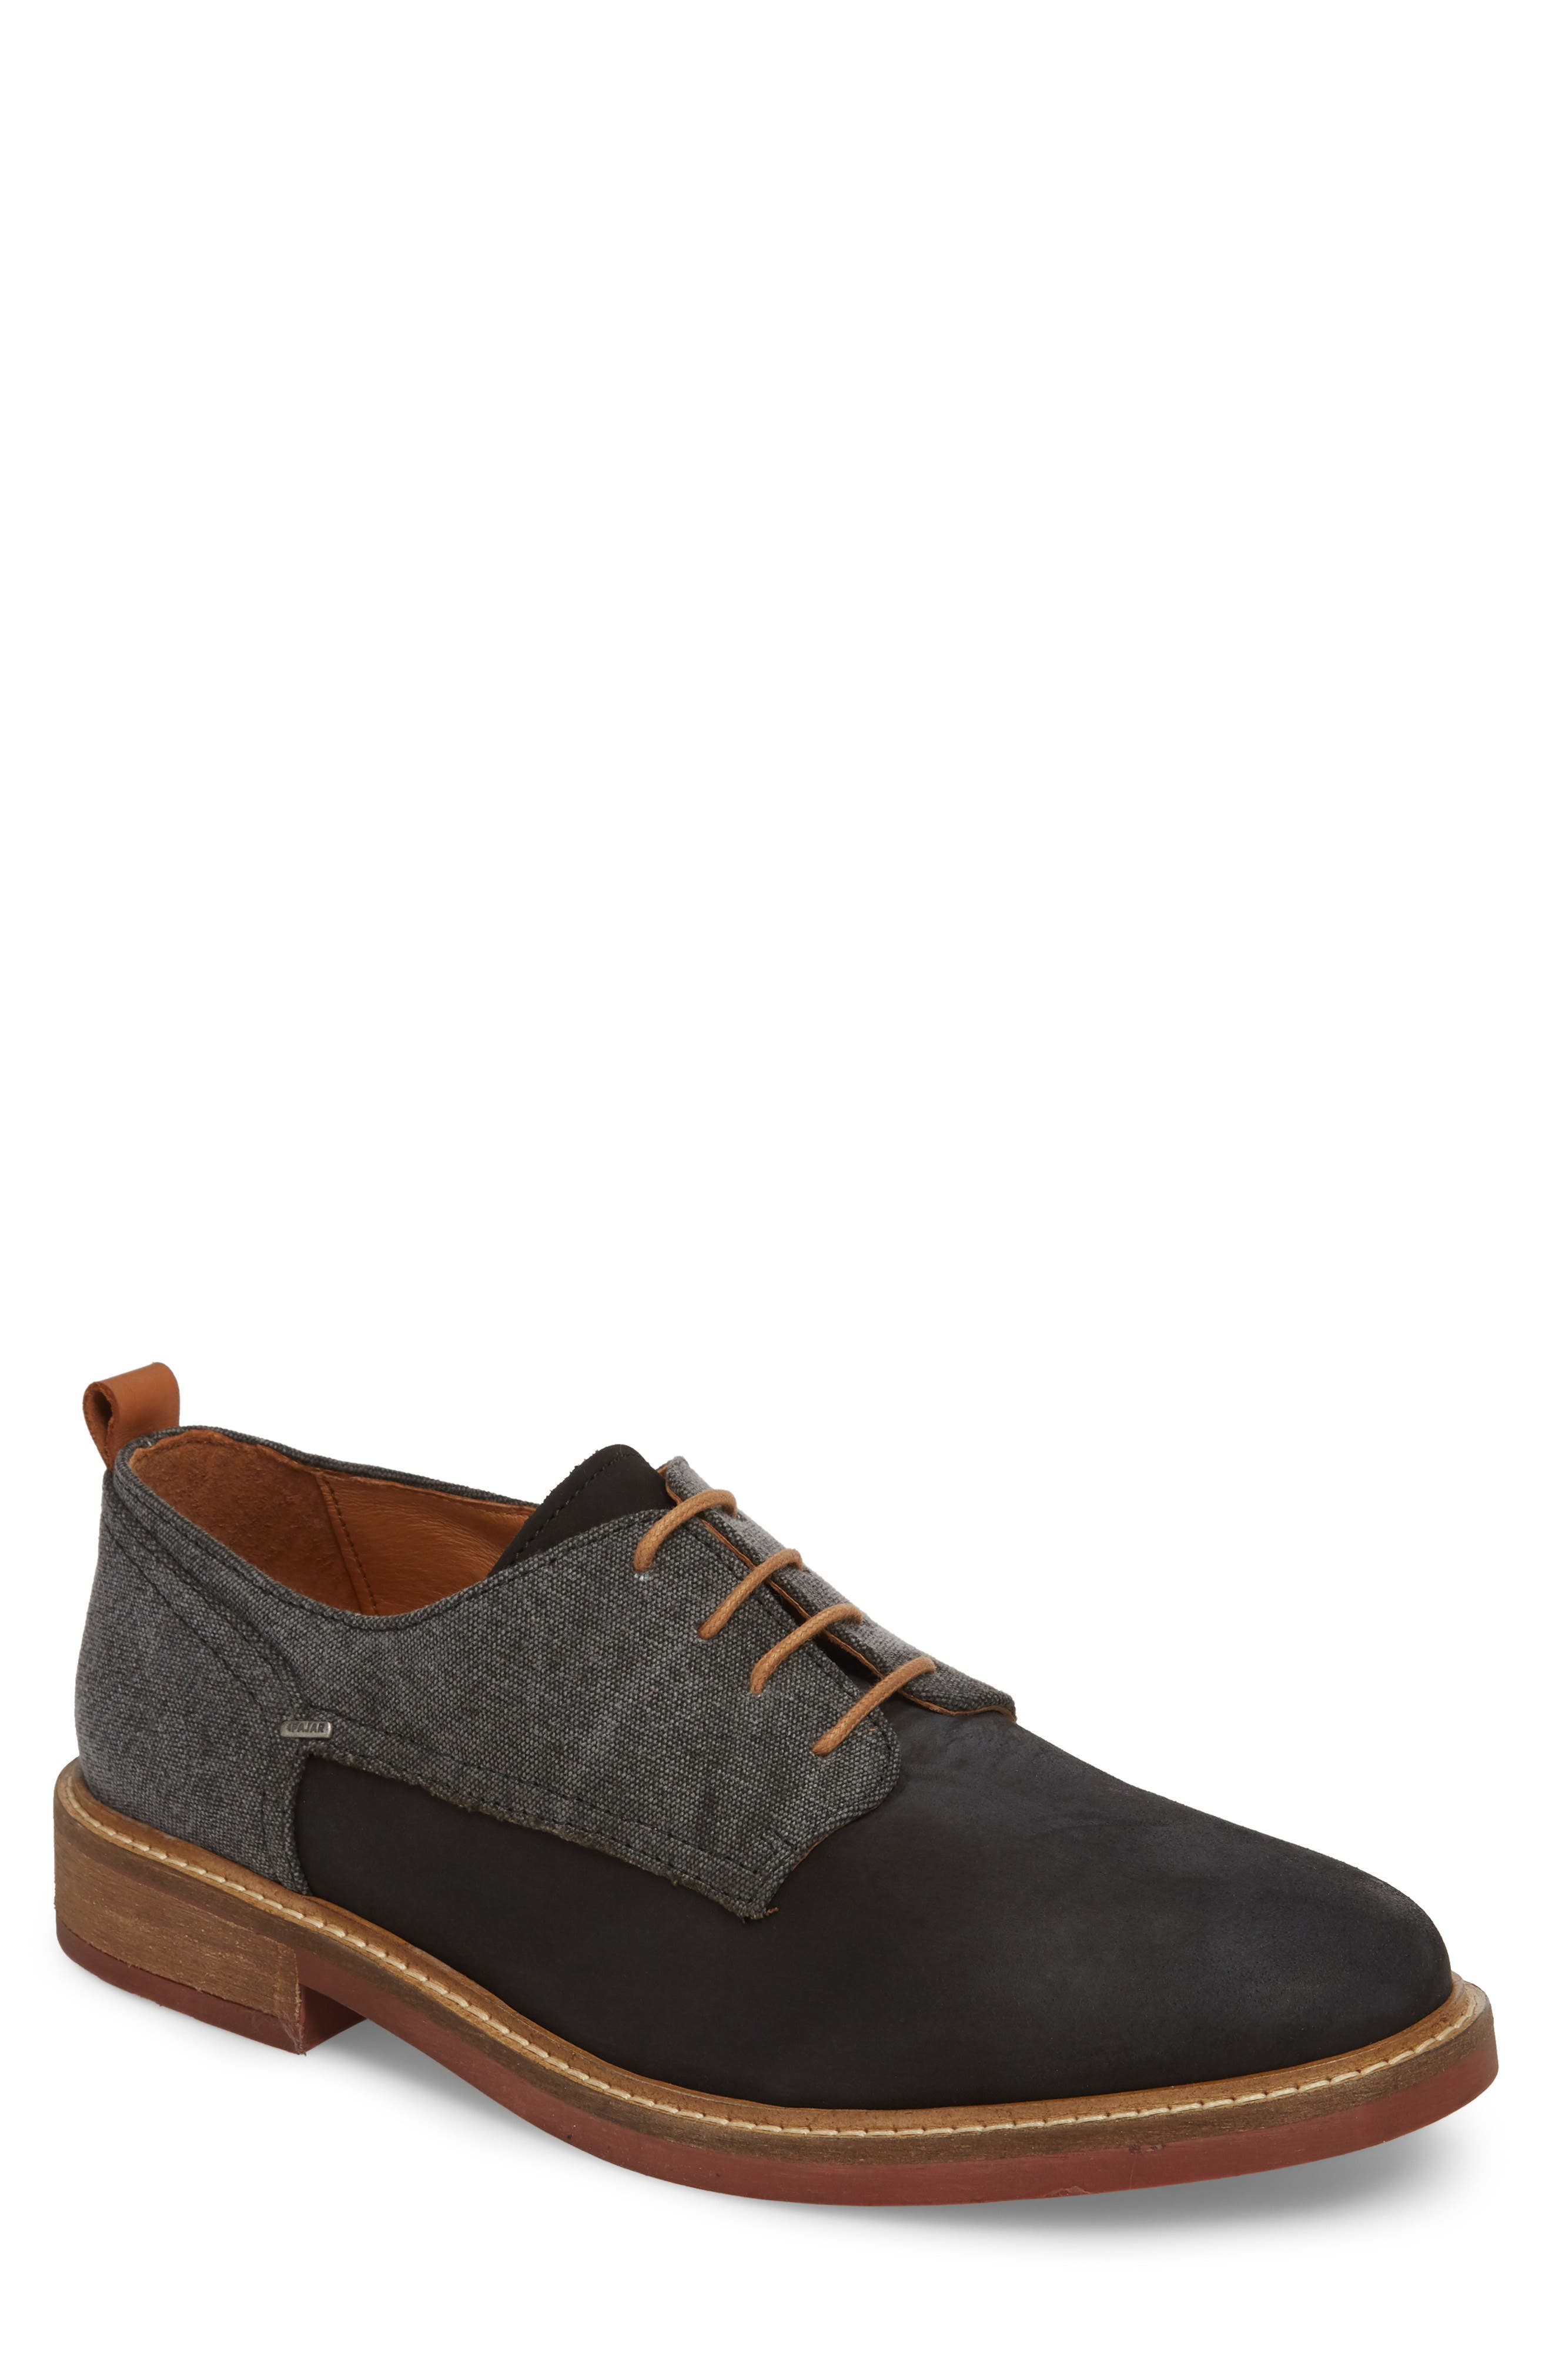 River Water Resistant Derby,                             Main thumbnail 1, color,                             Nero